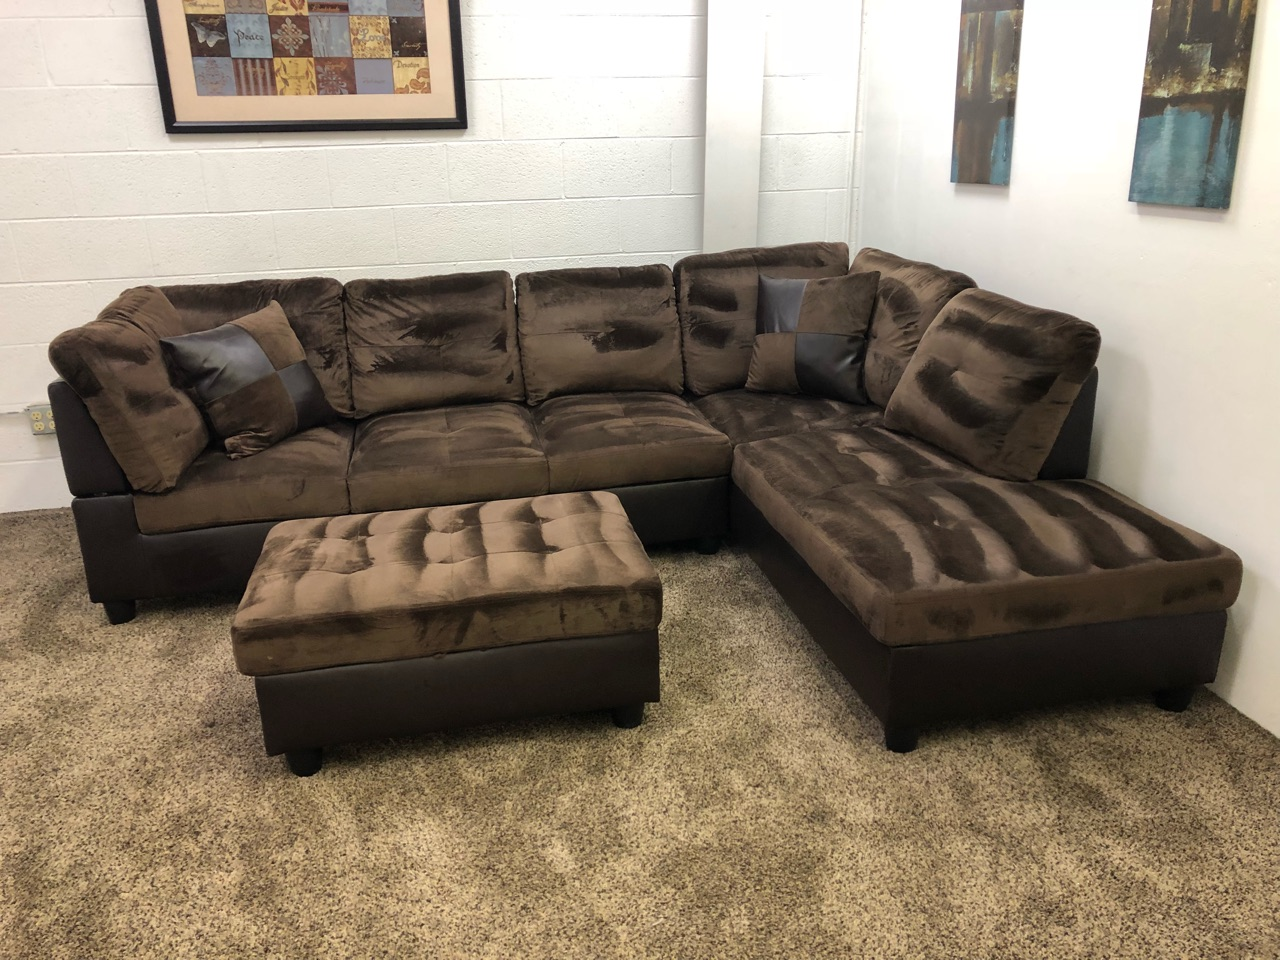 3 piece microfiber sectional sofa with chaise vine vinyl 1241 brown plush set